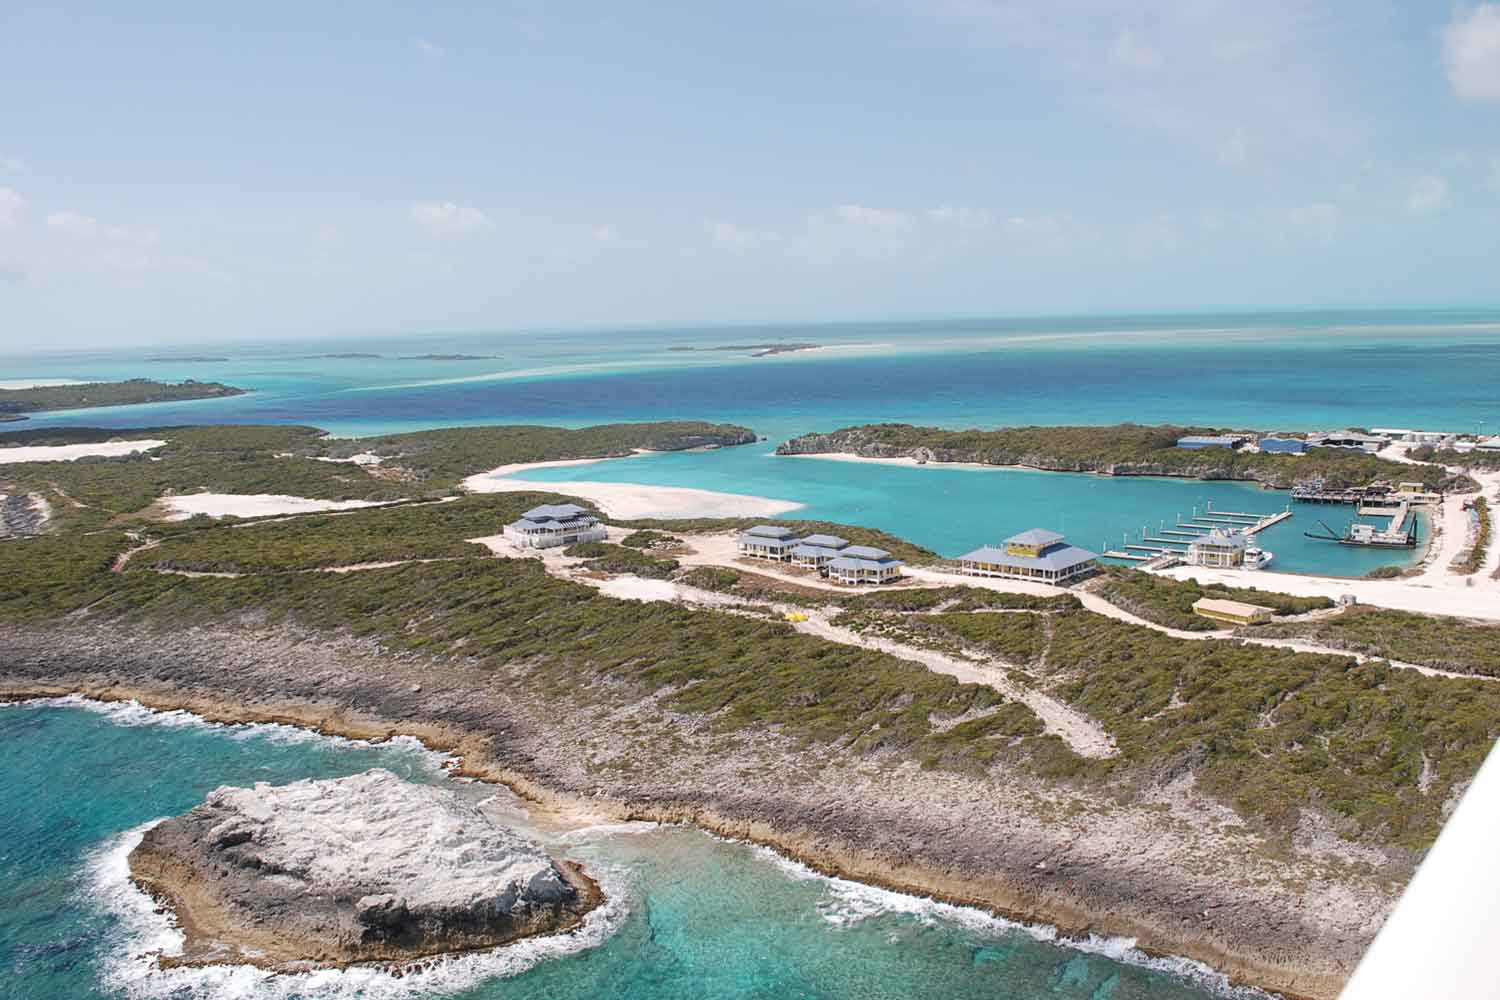 <b>Exumas, Bahamas</b><br/><i>20 Bedrooms, 70,000 sq. ft.</i><br/>Private island with deep-water harbour and marina